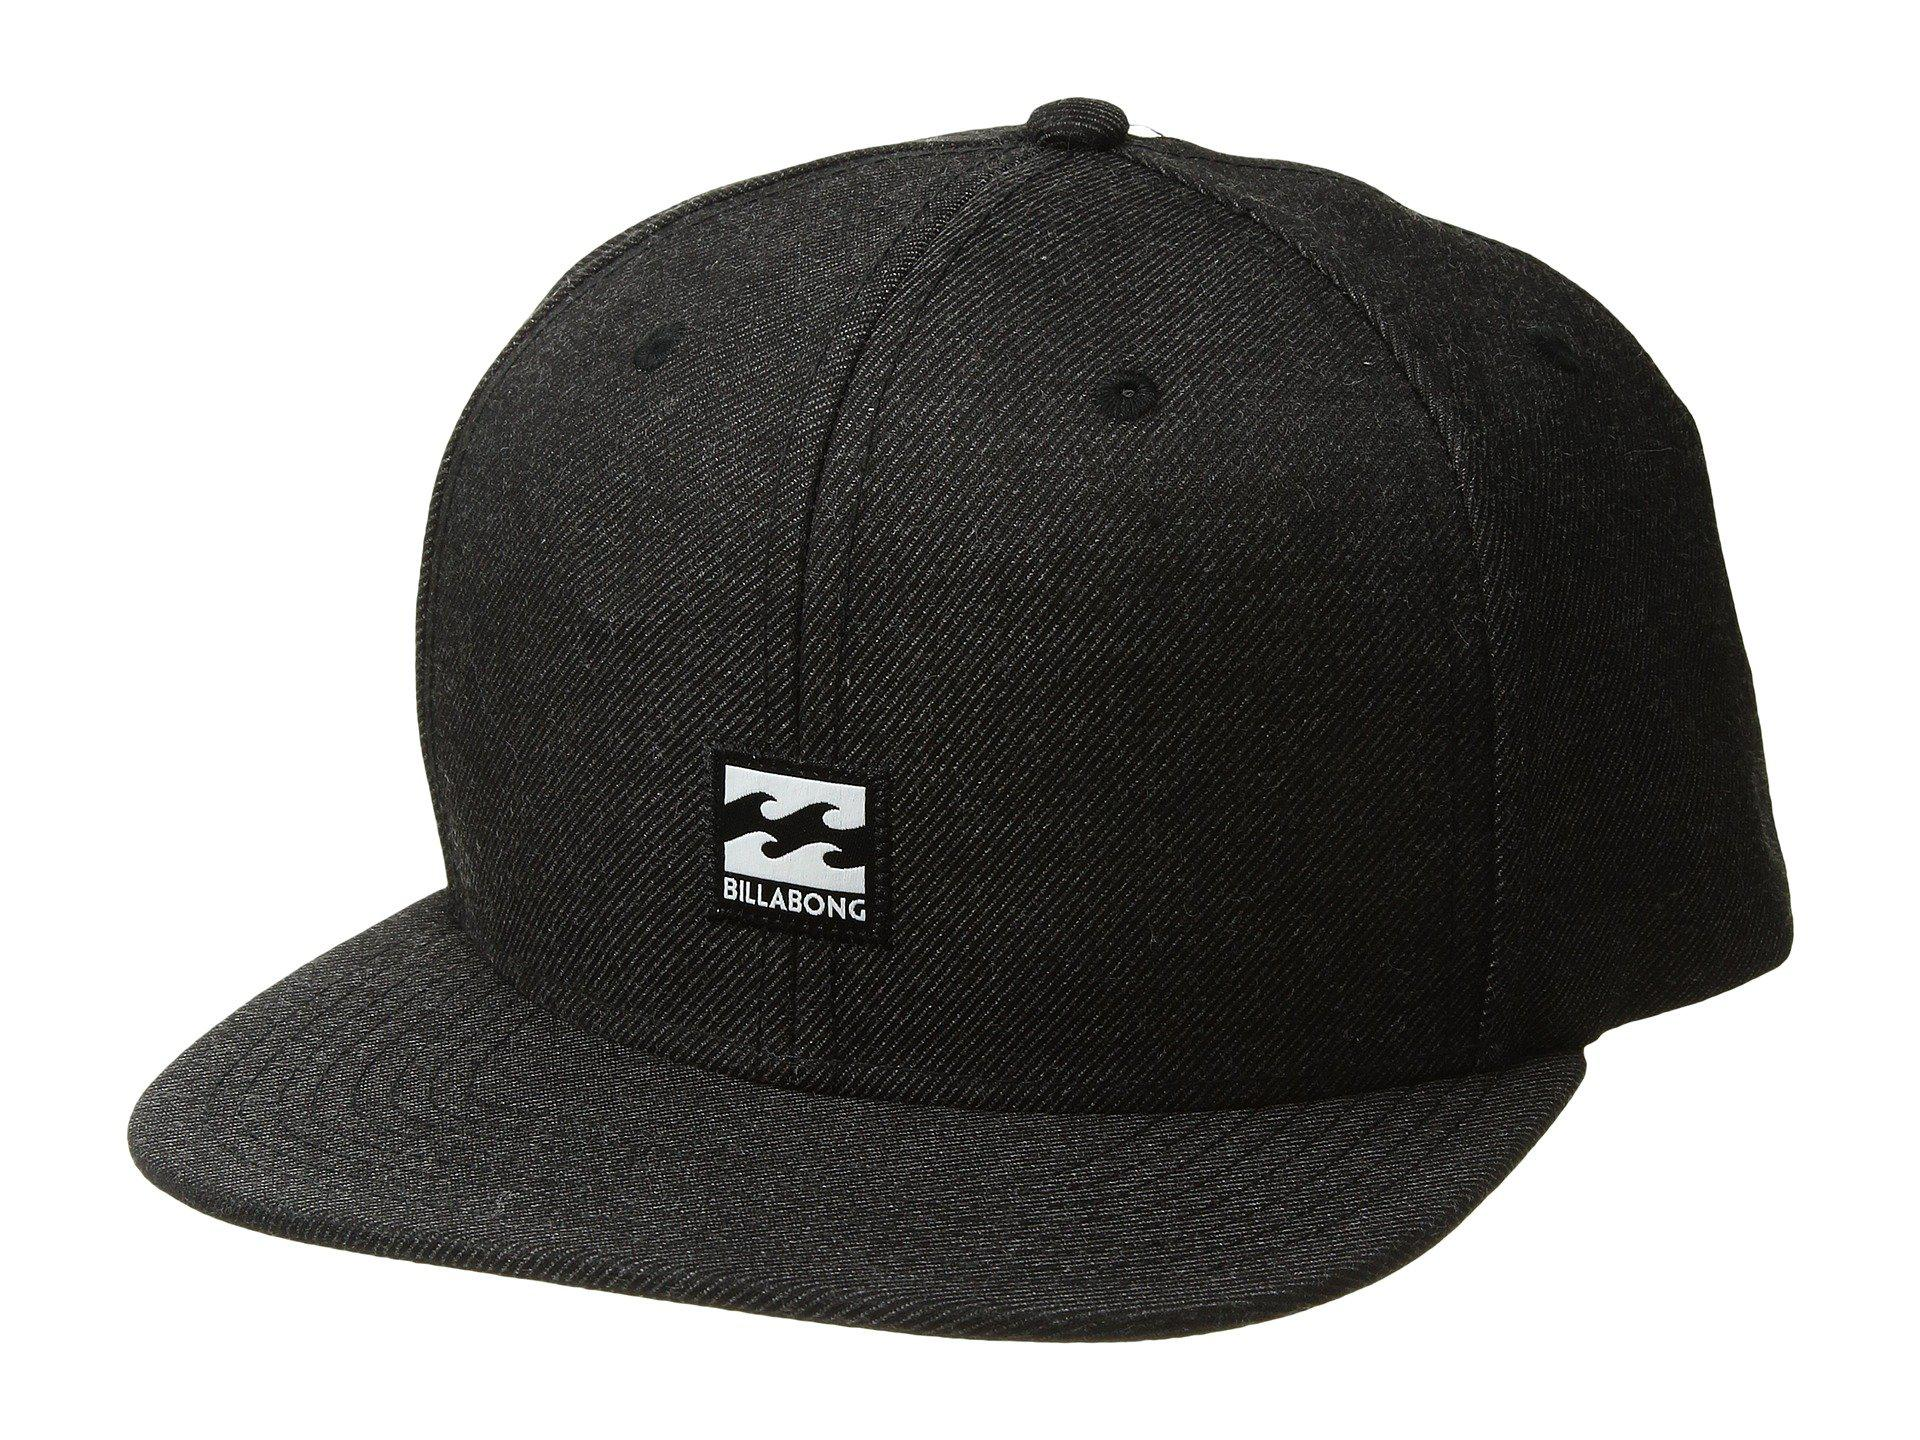 7c2ae6c7a15 ... netherlands lyst billabong primary snapback hat black heather 2 caps in  de124 0f679